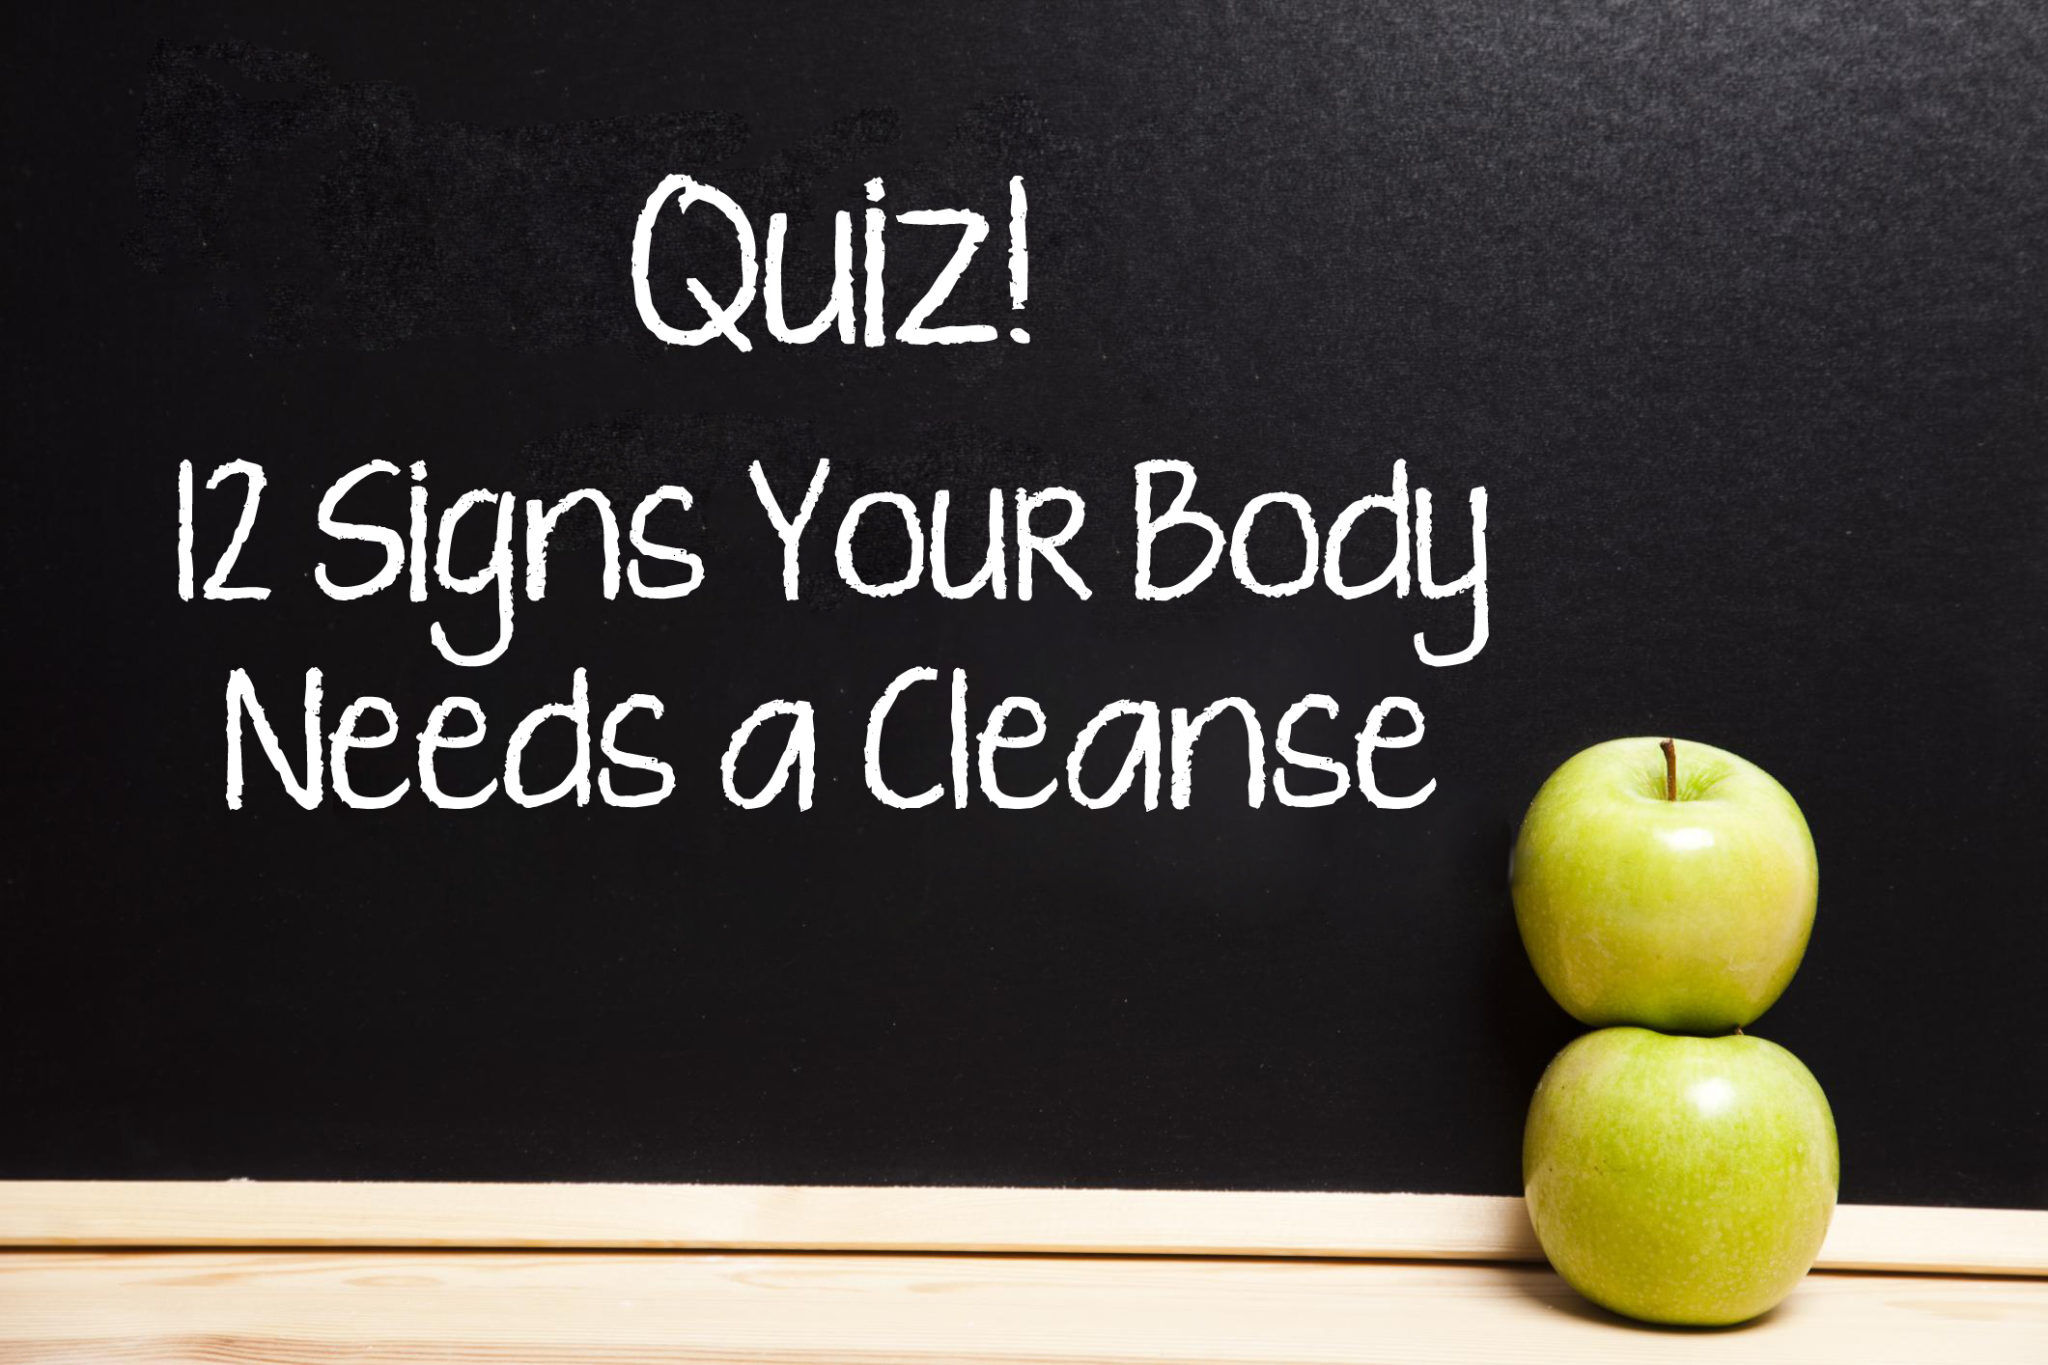 Quiz! 12 Signs Your Body Needs a Cleanse